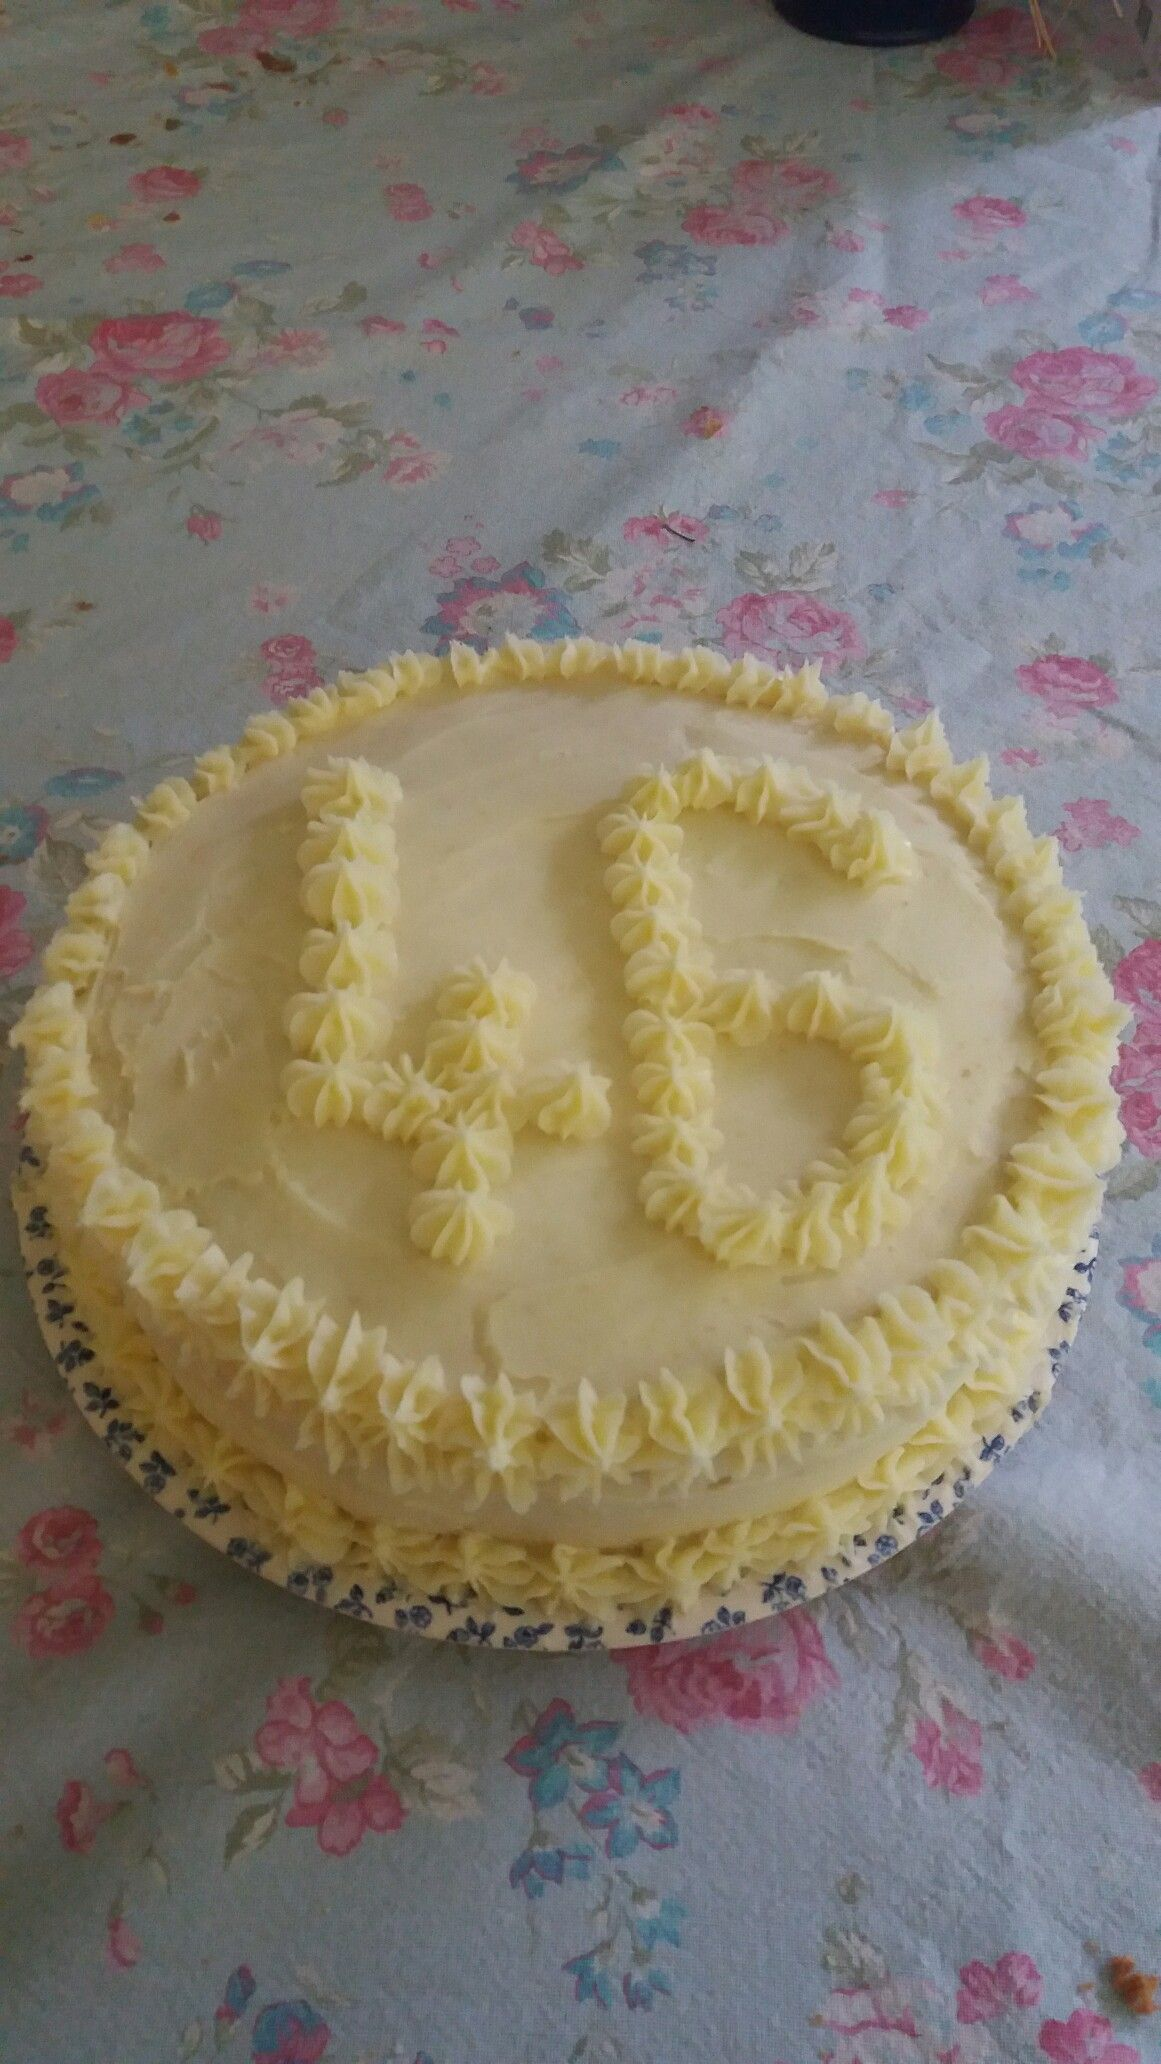 My mumus birthday cake when you cut into lots of s marties fall